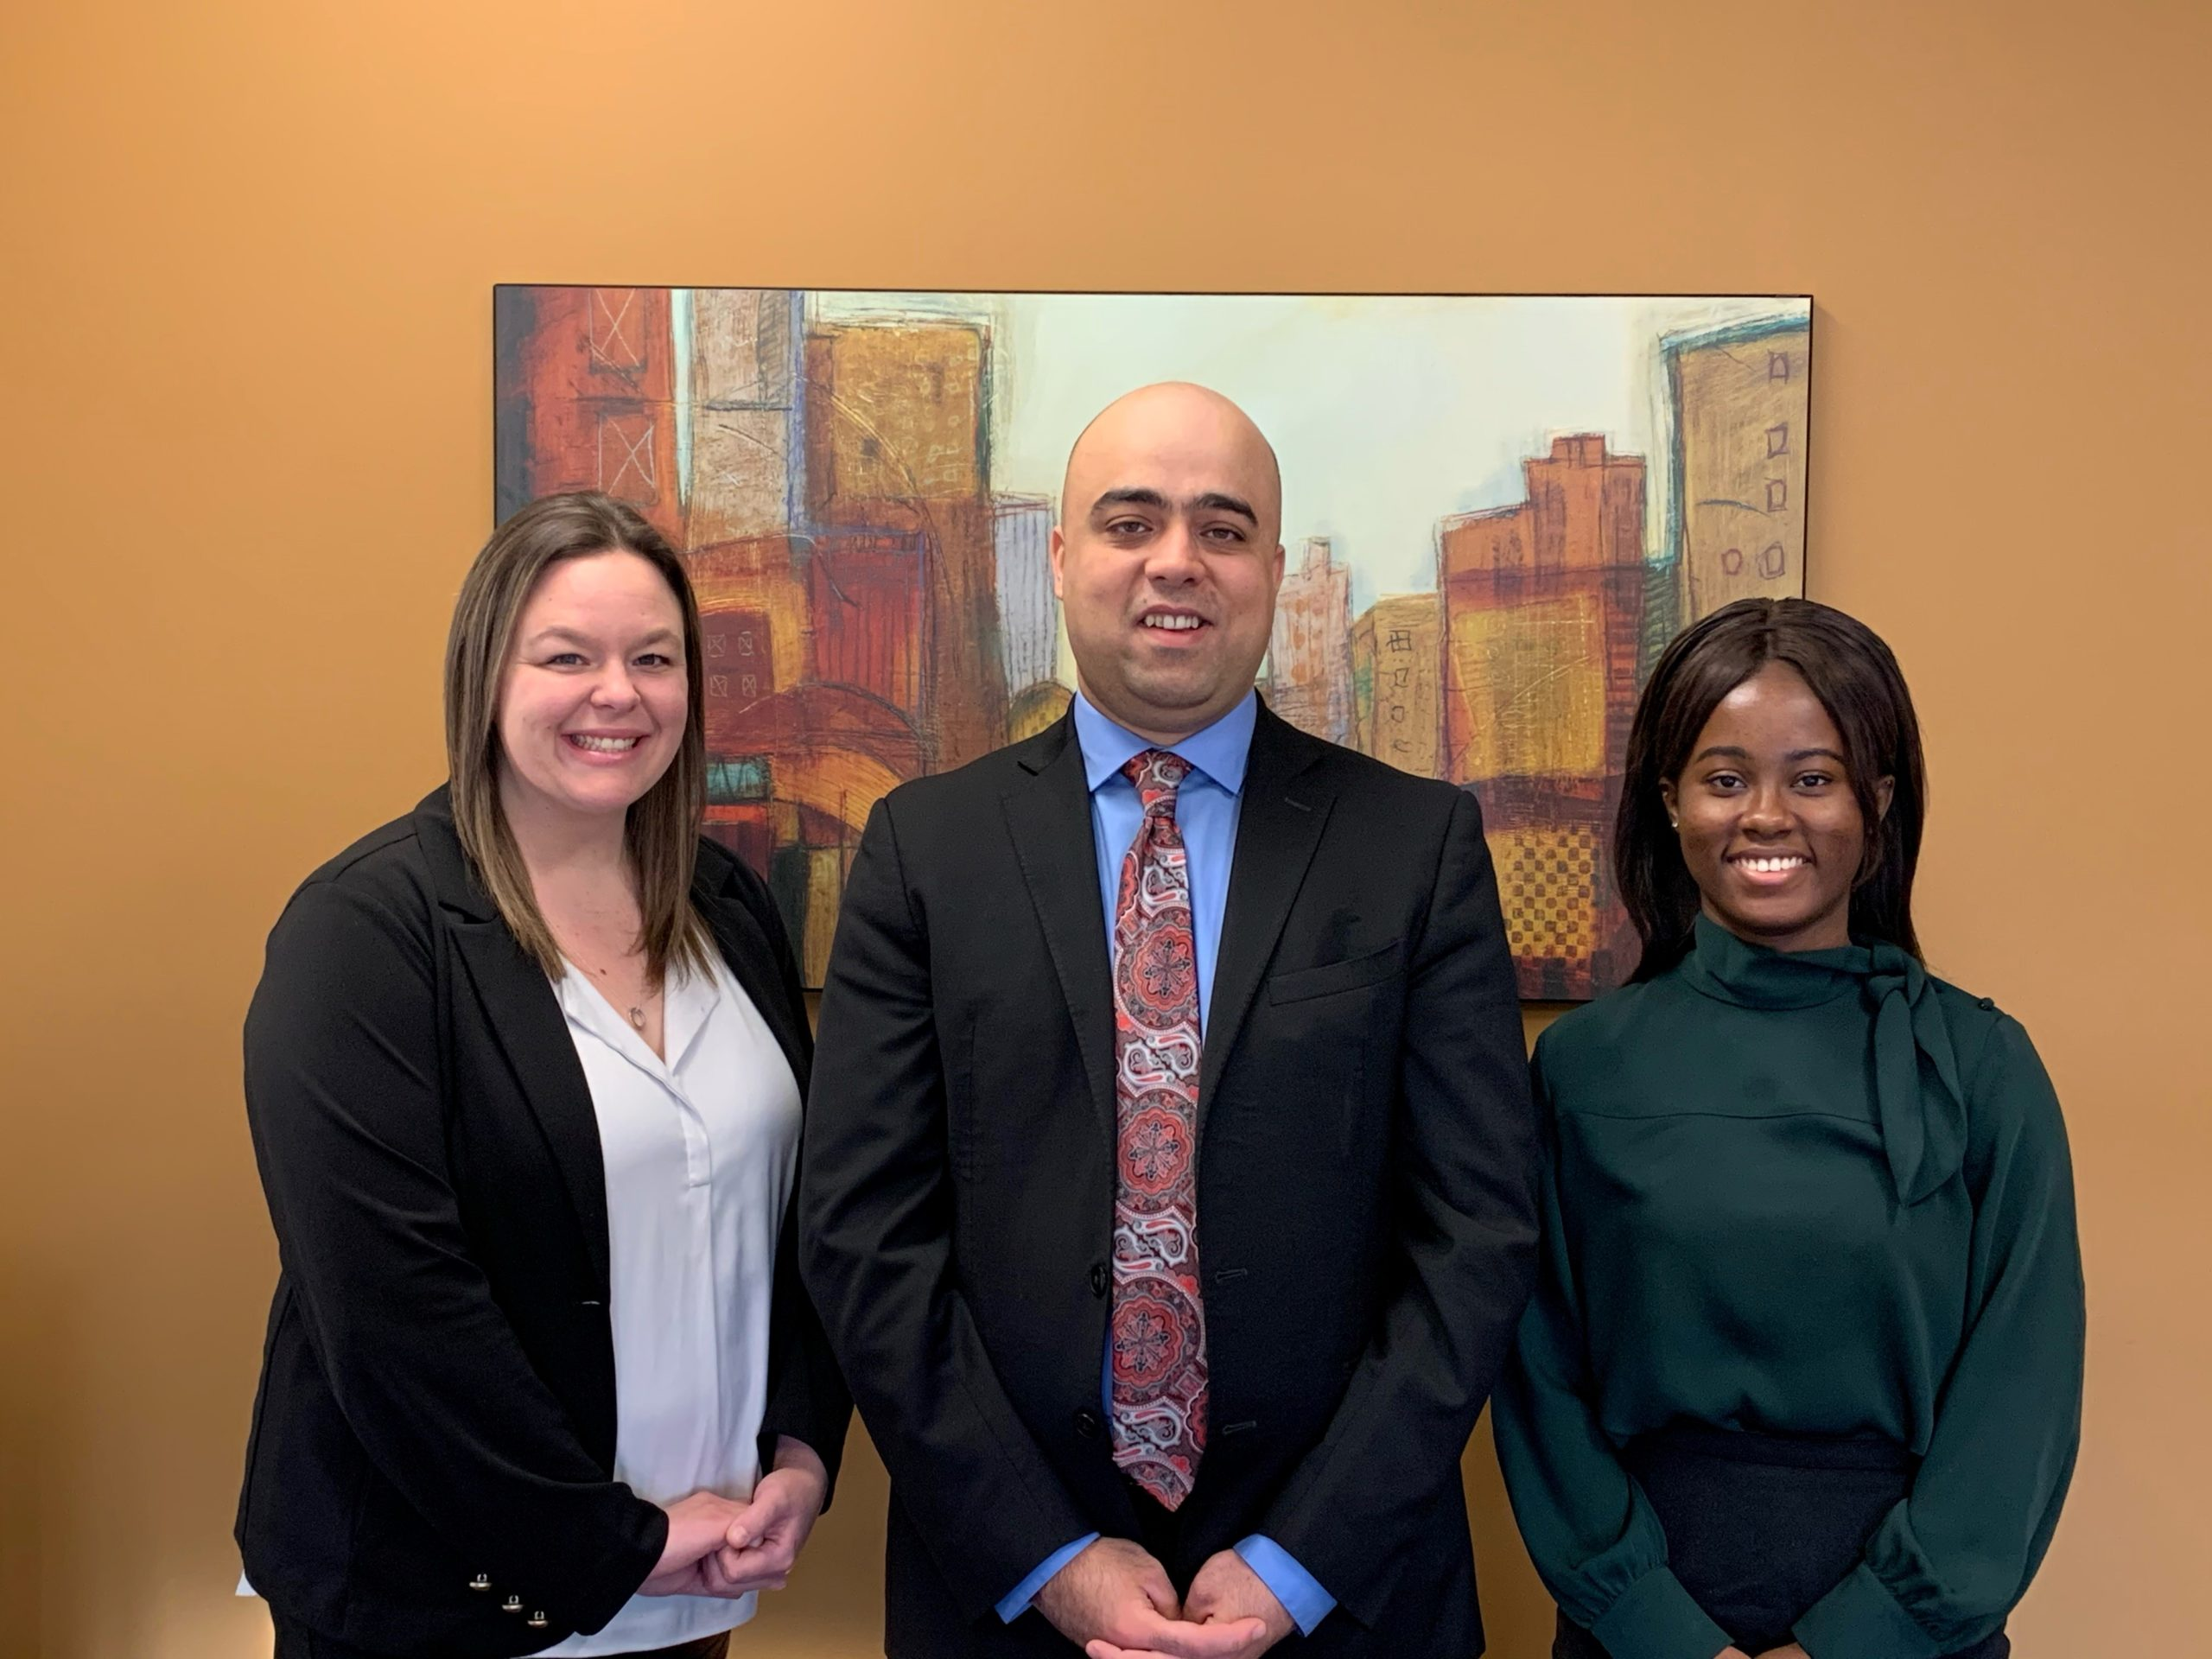 photo of the Safi Law Group legal team, from left to right, meet Stephanie Shoobridge, Sangin (Sam) Safi, and Abena Wiafe